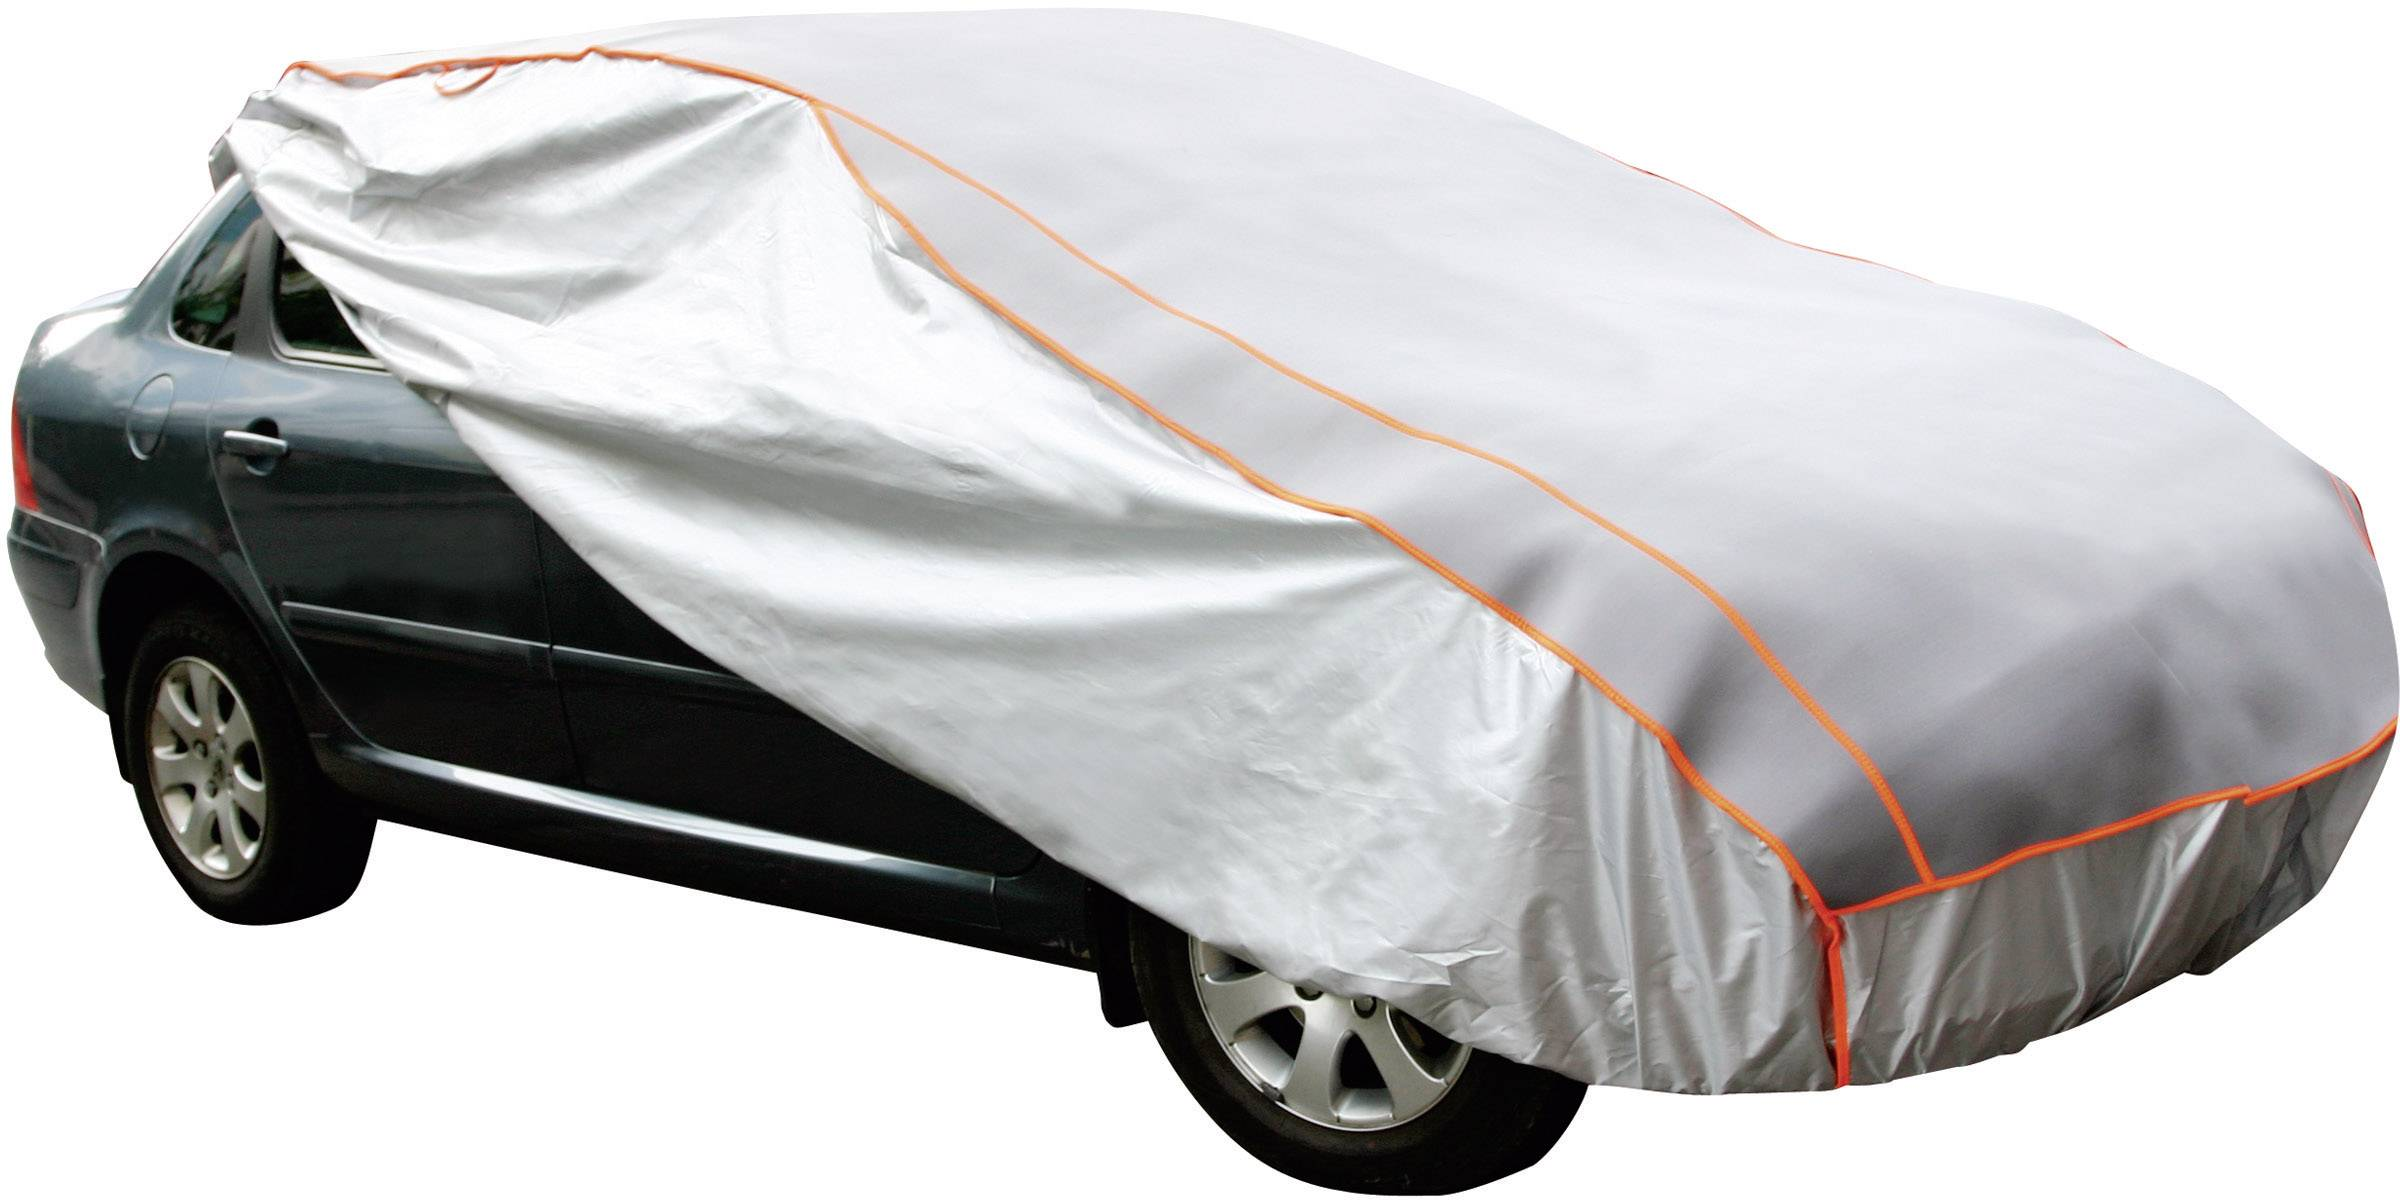 Hail Protection Car Cover >> Hp Autozubehor Large Hail Protection Car Cover L X W X H 480 X 177 X 120 Cm